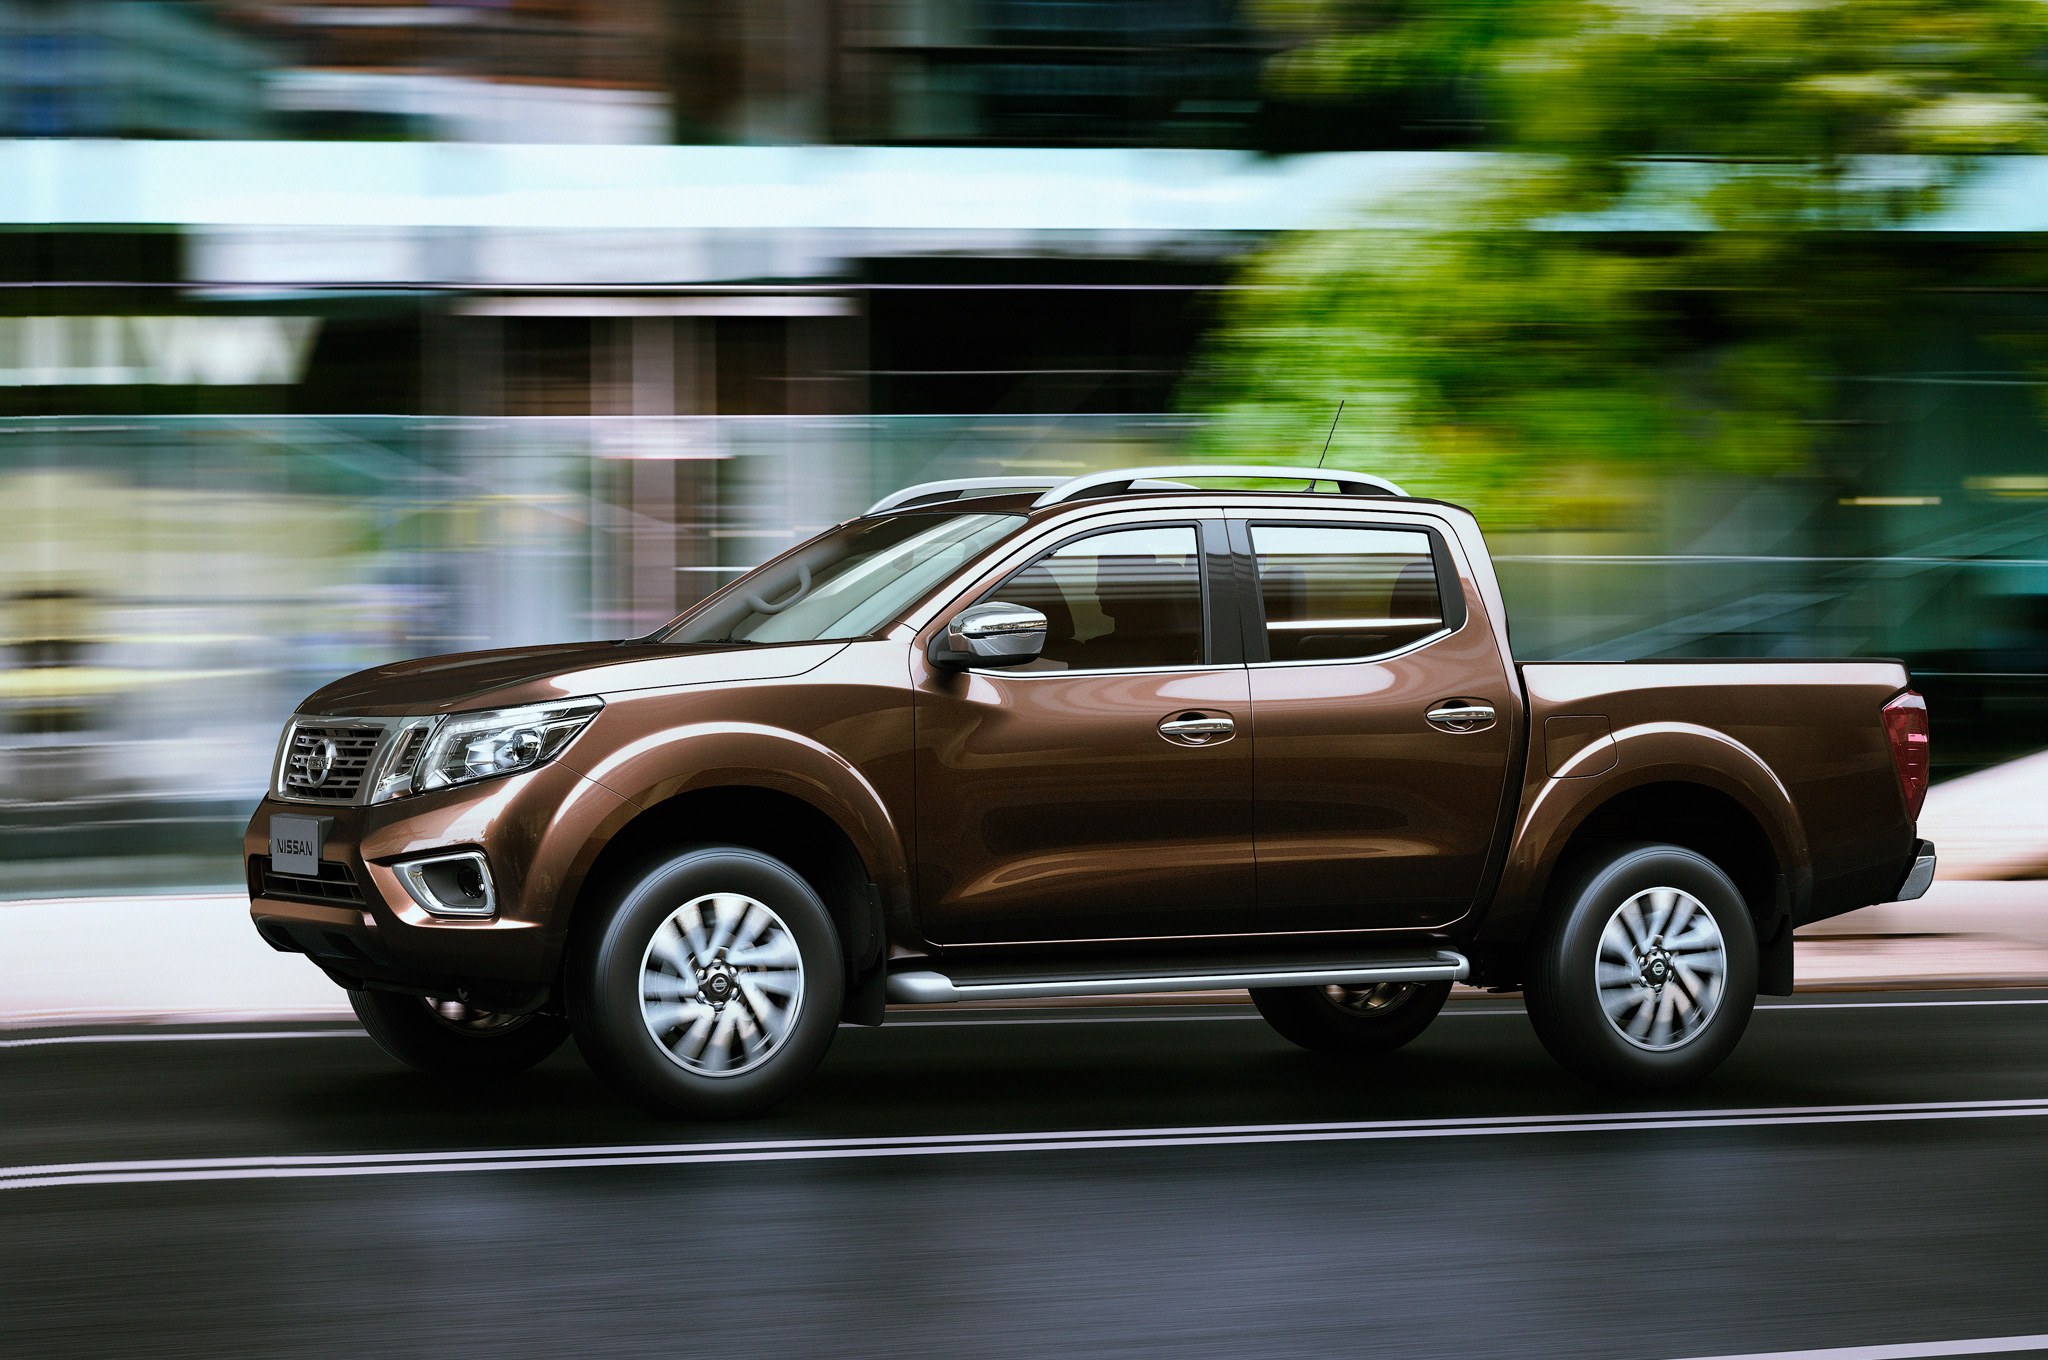 2015 All New Nissan Np300 Navara Exterior Profile (Photo 1 of 6)